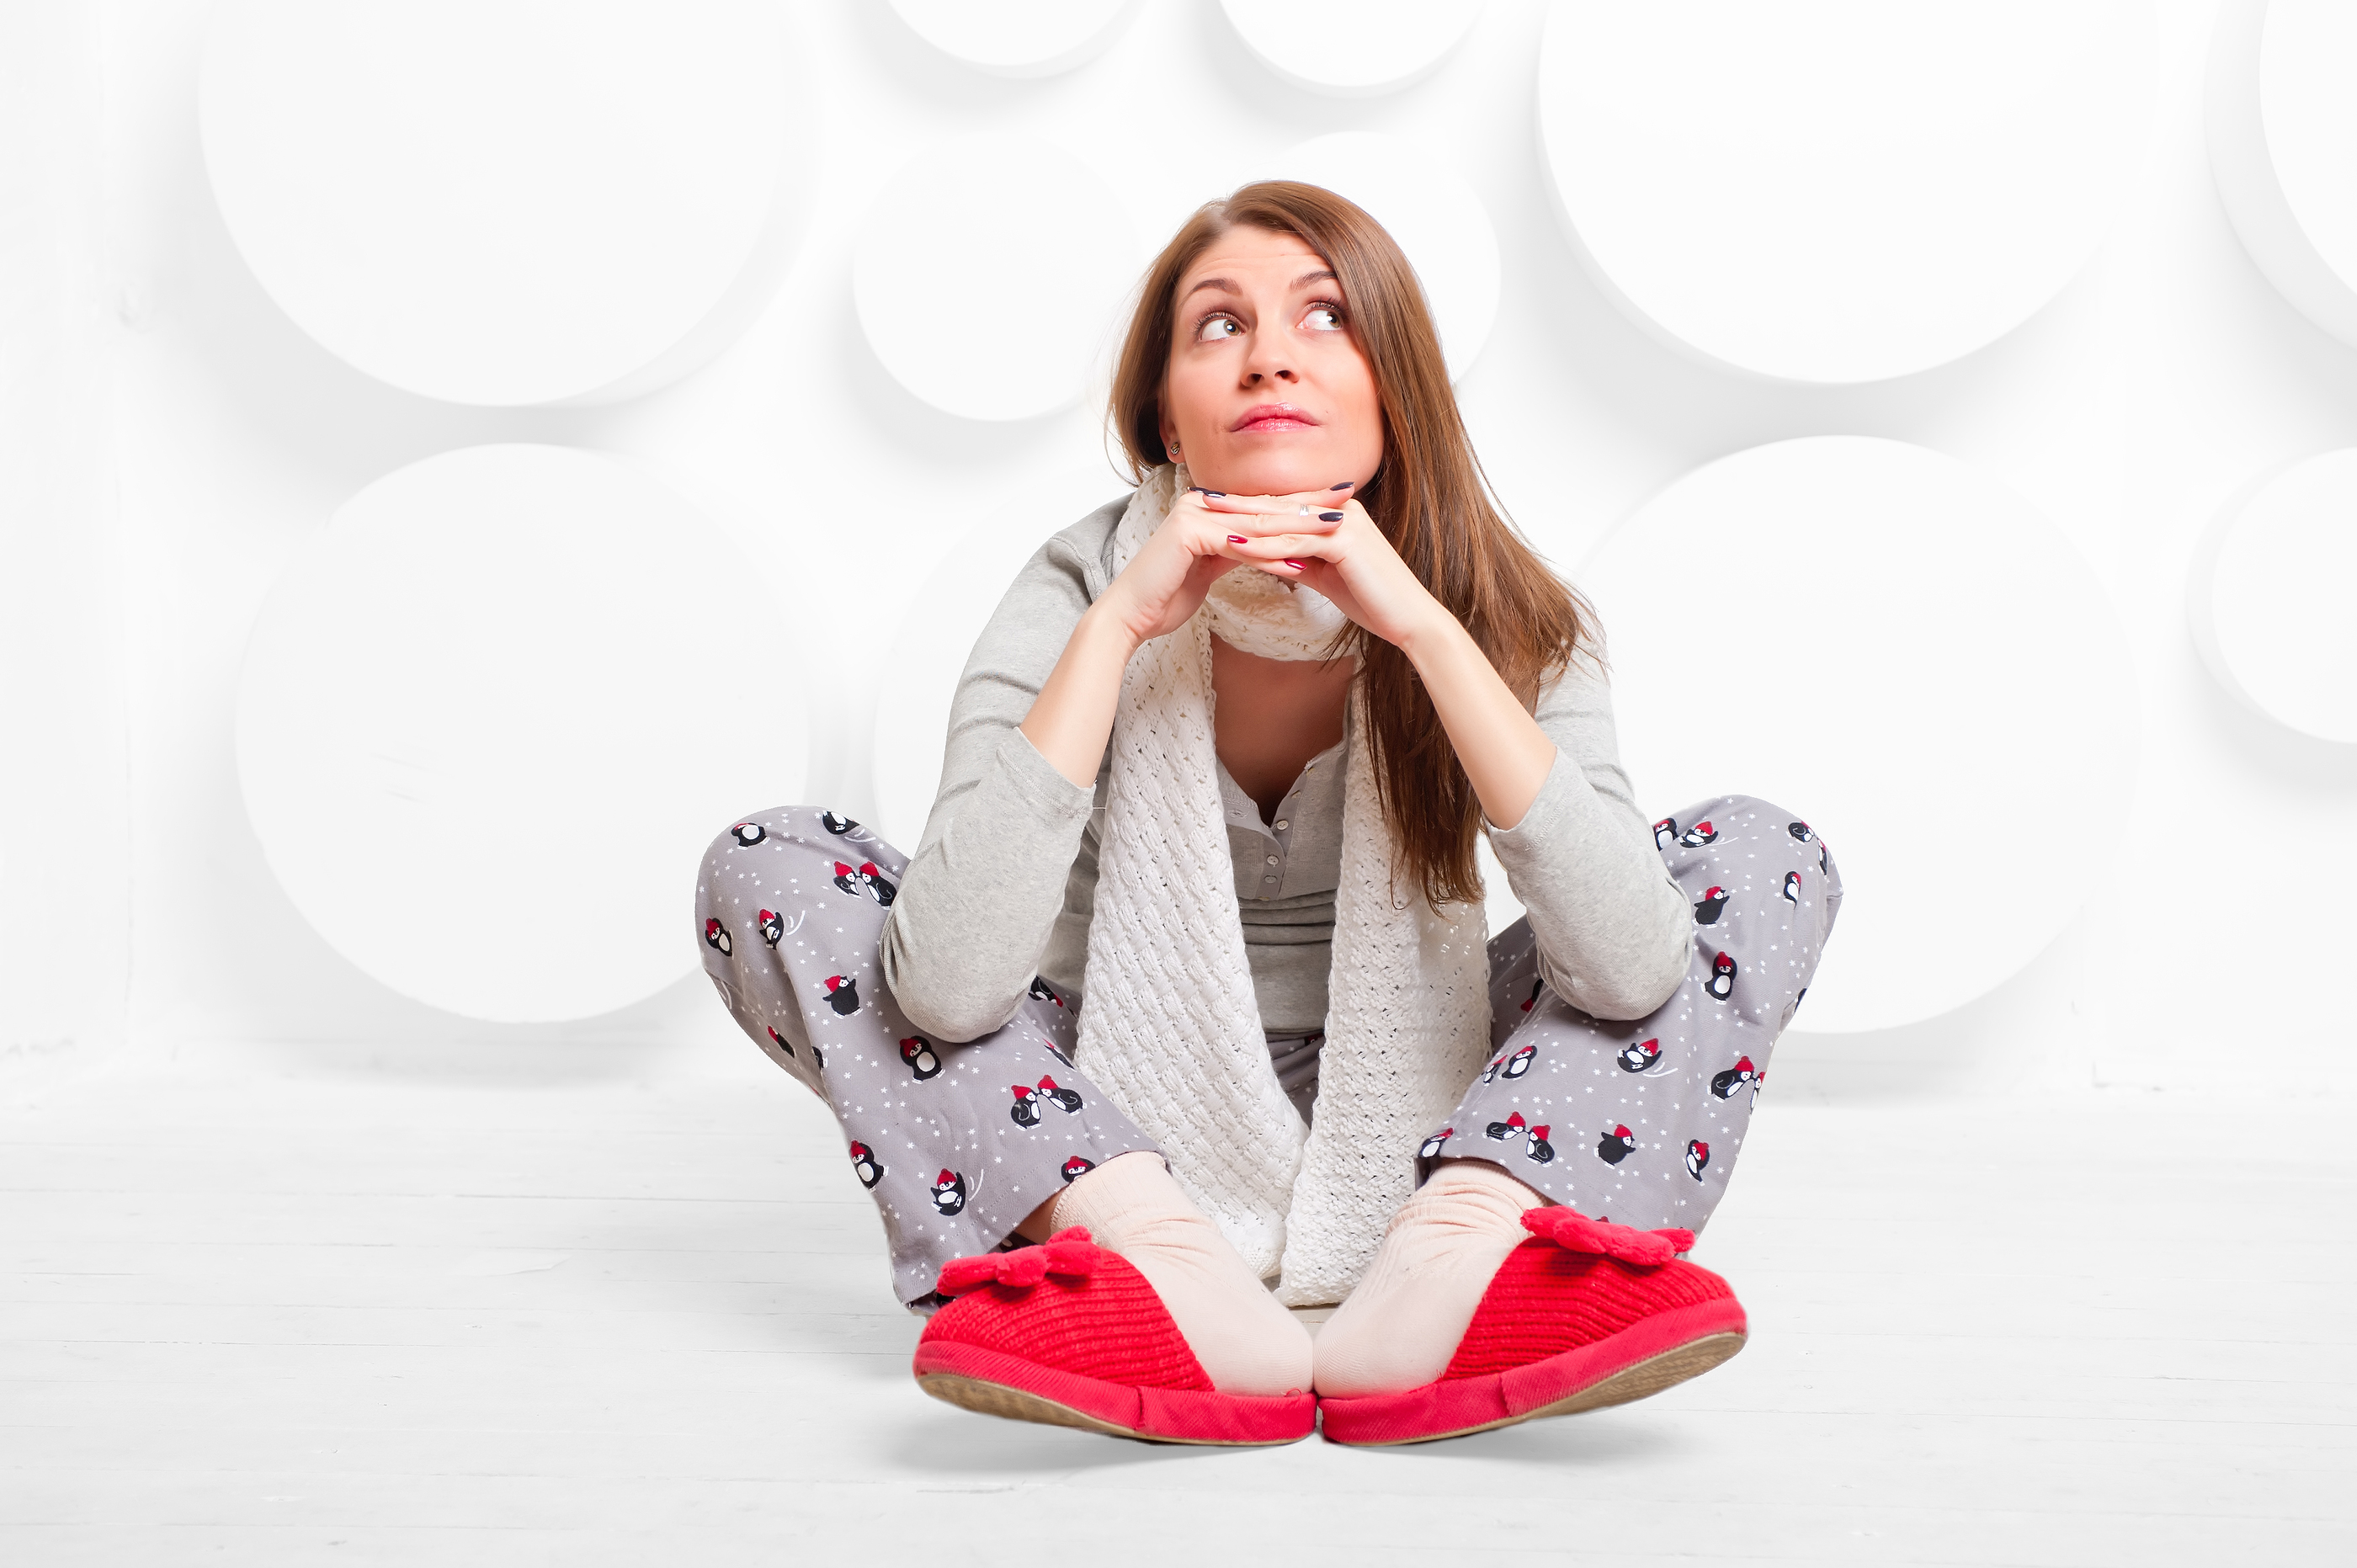 Girl In Studio In Slippers And Pajamas